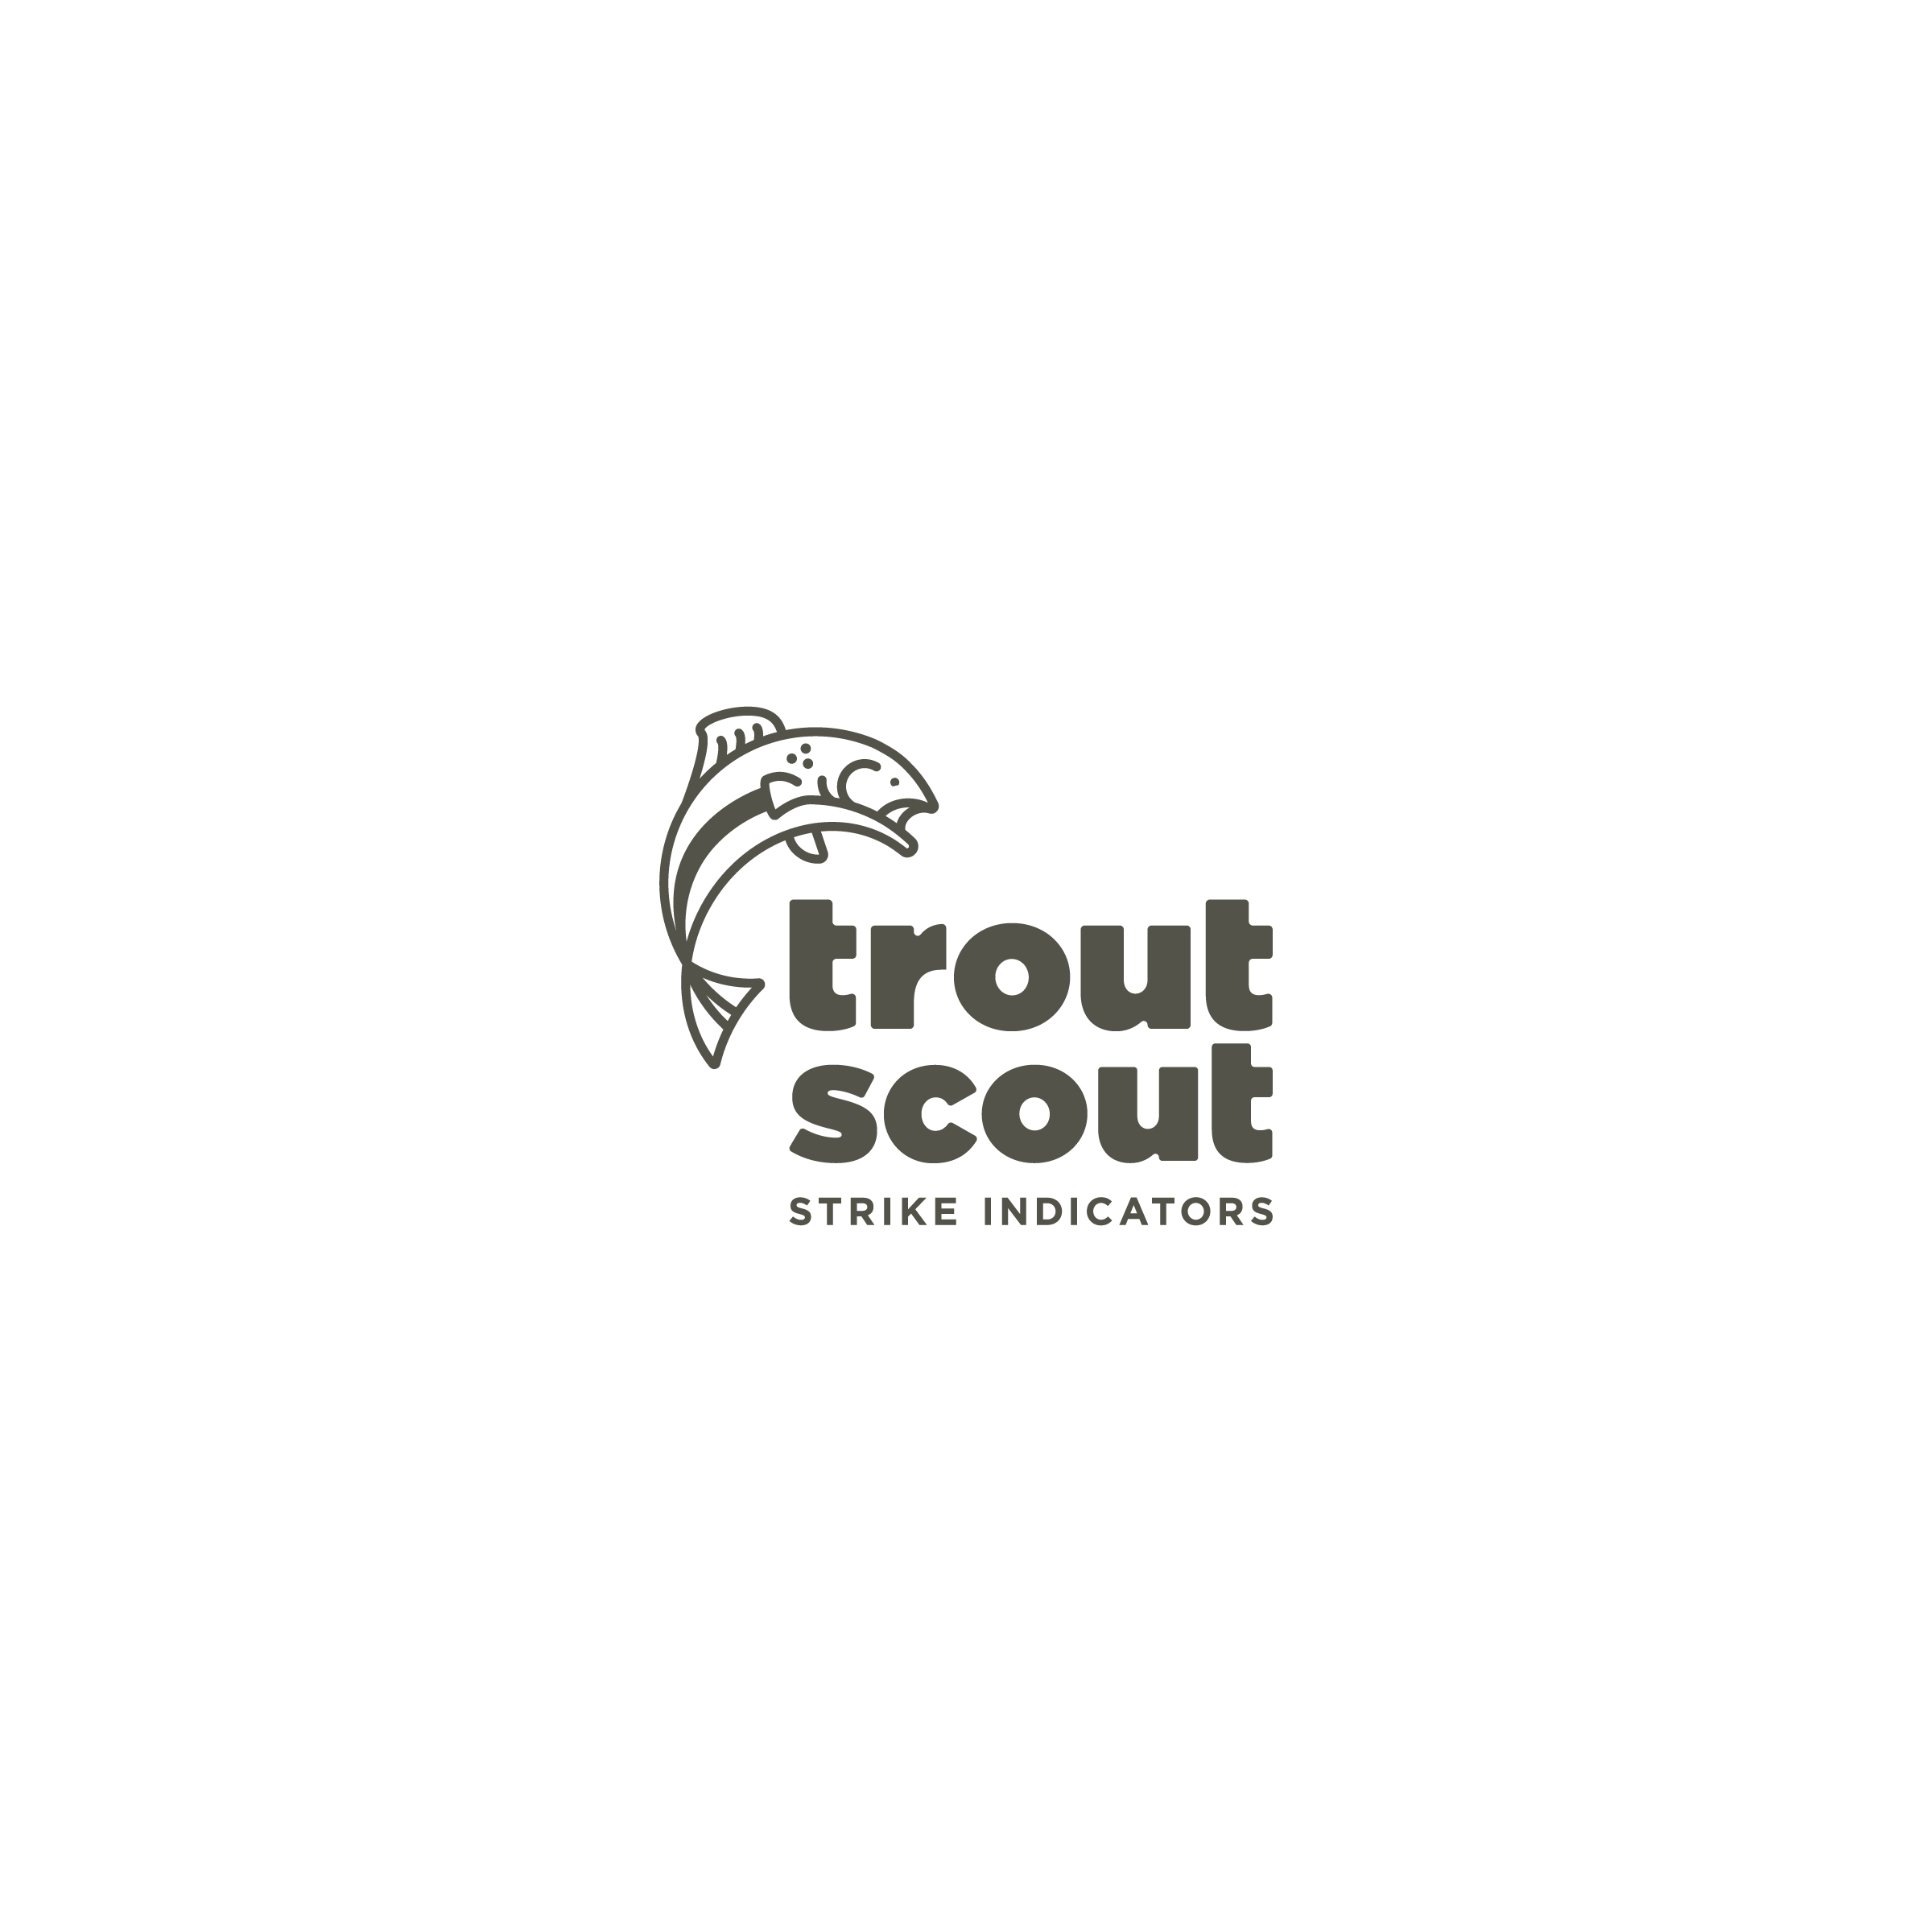 TroutScout_DkBrown_Vrt.jpg